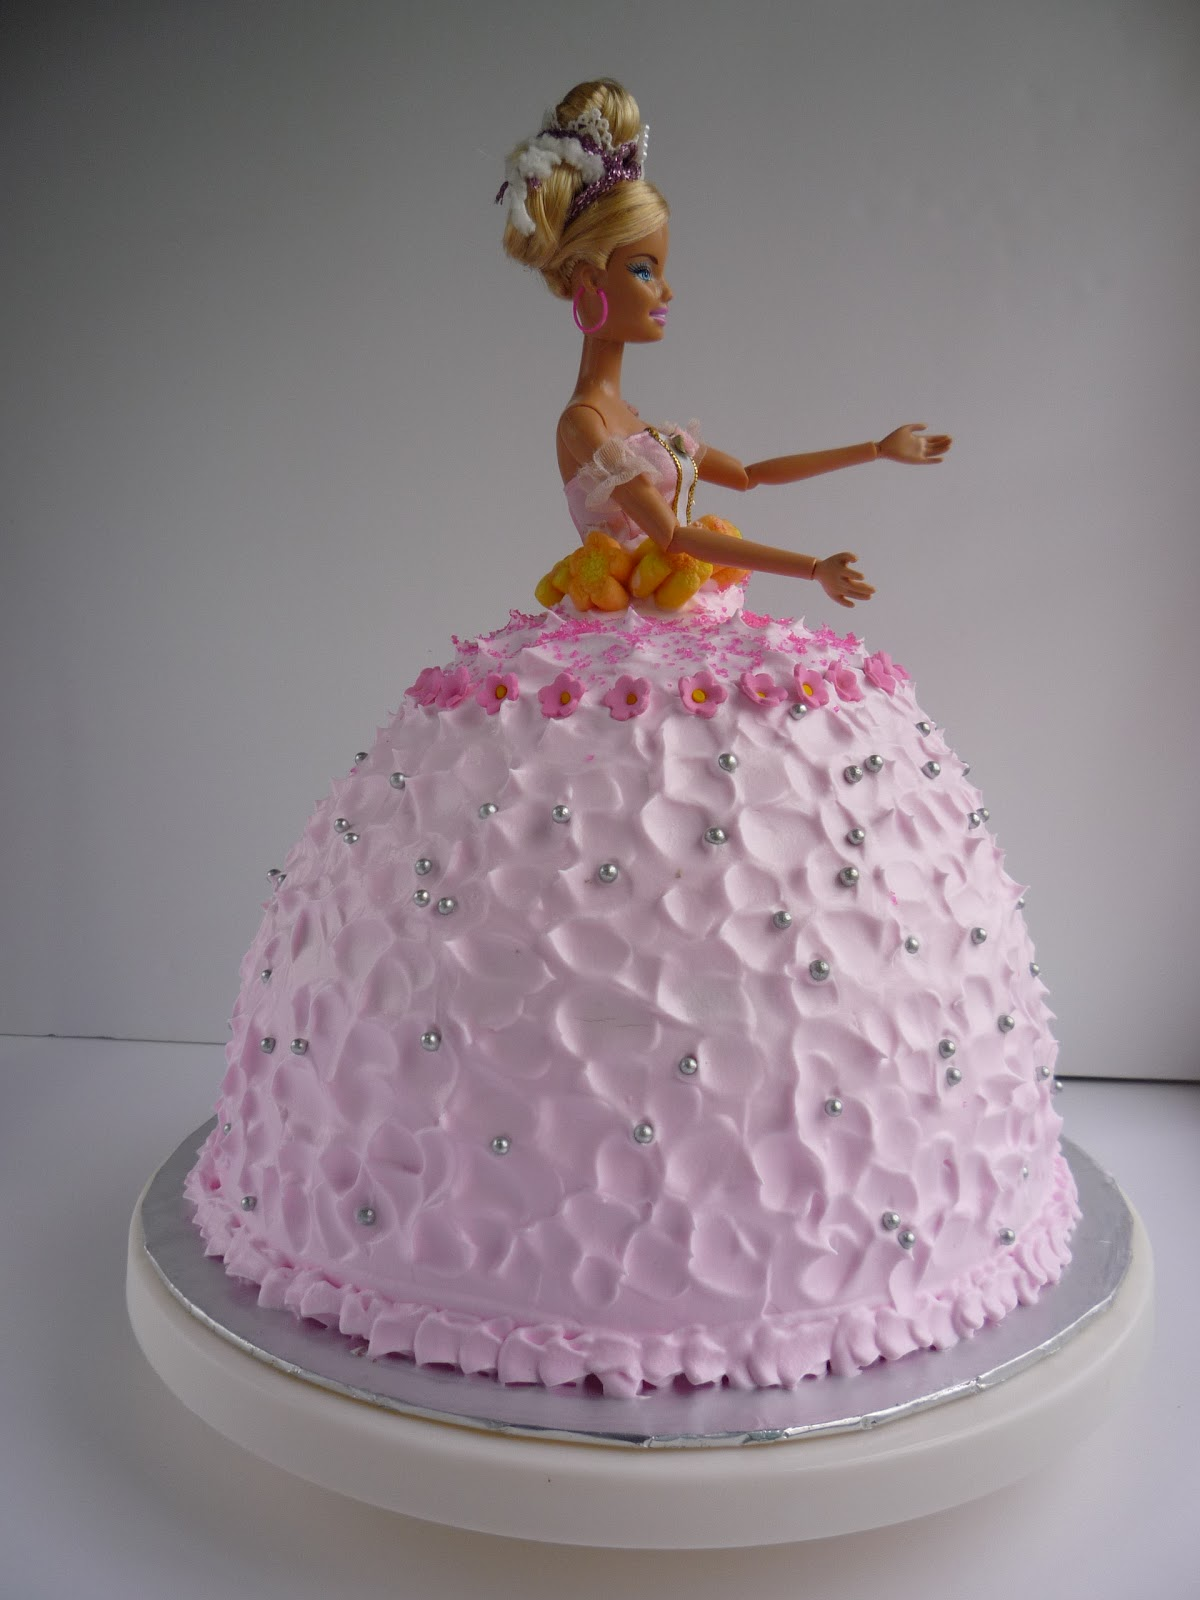 Barbie Doll Cake Decorating Ideas : Barbie Doll Cake